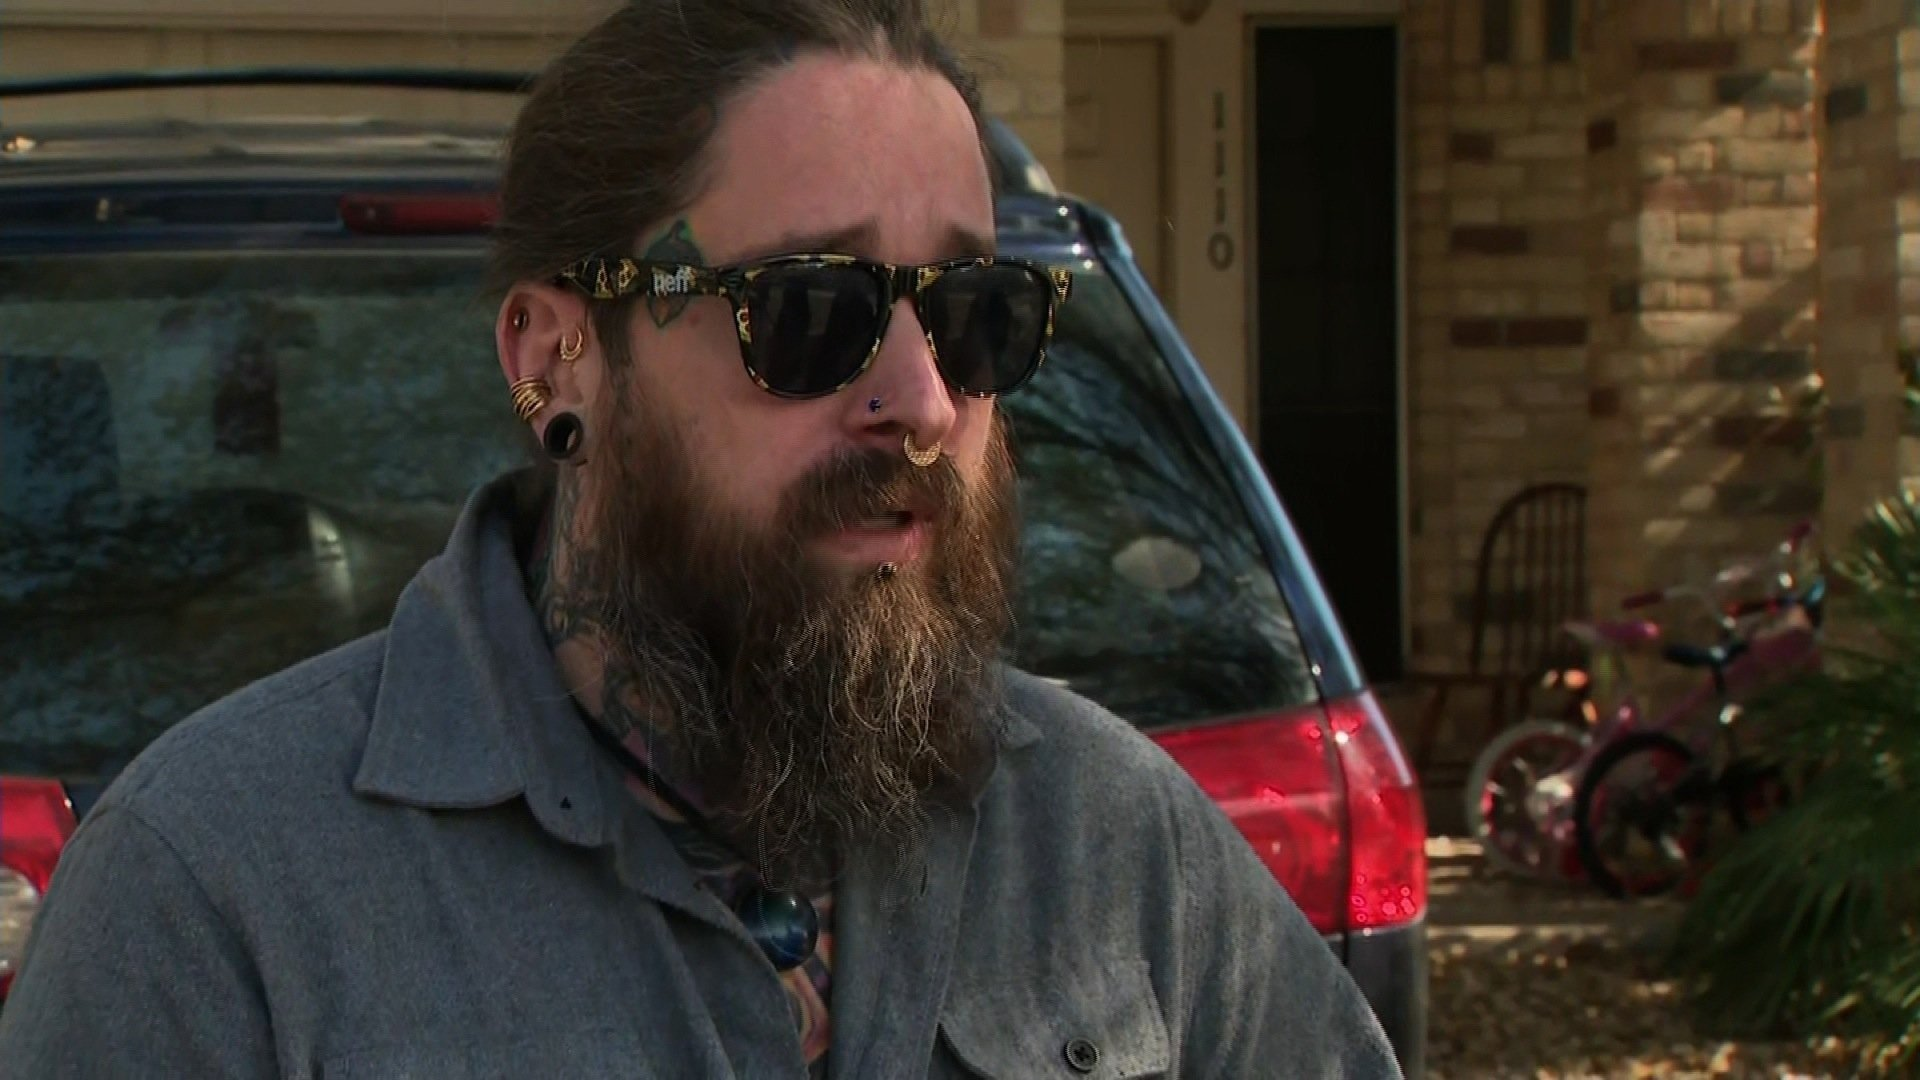 Sean Philips had just woken up and was sitting on his couch when he heard the blast that would take his neighbor's life.